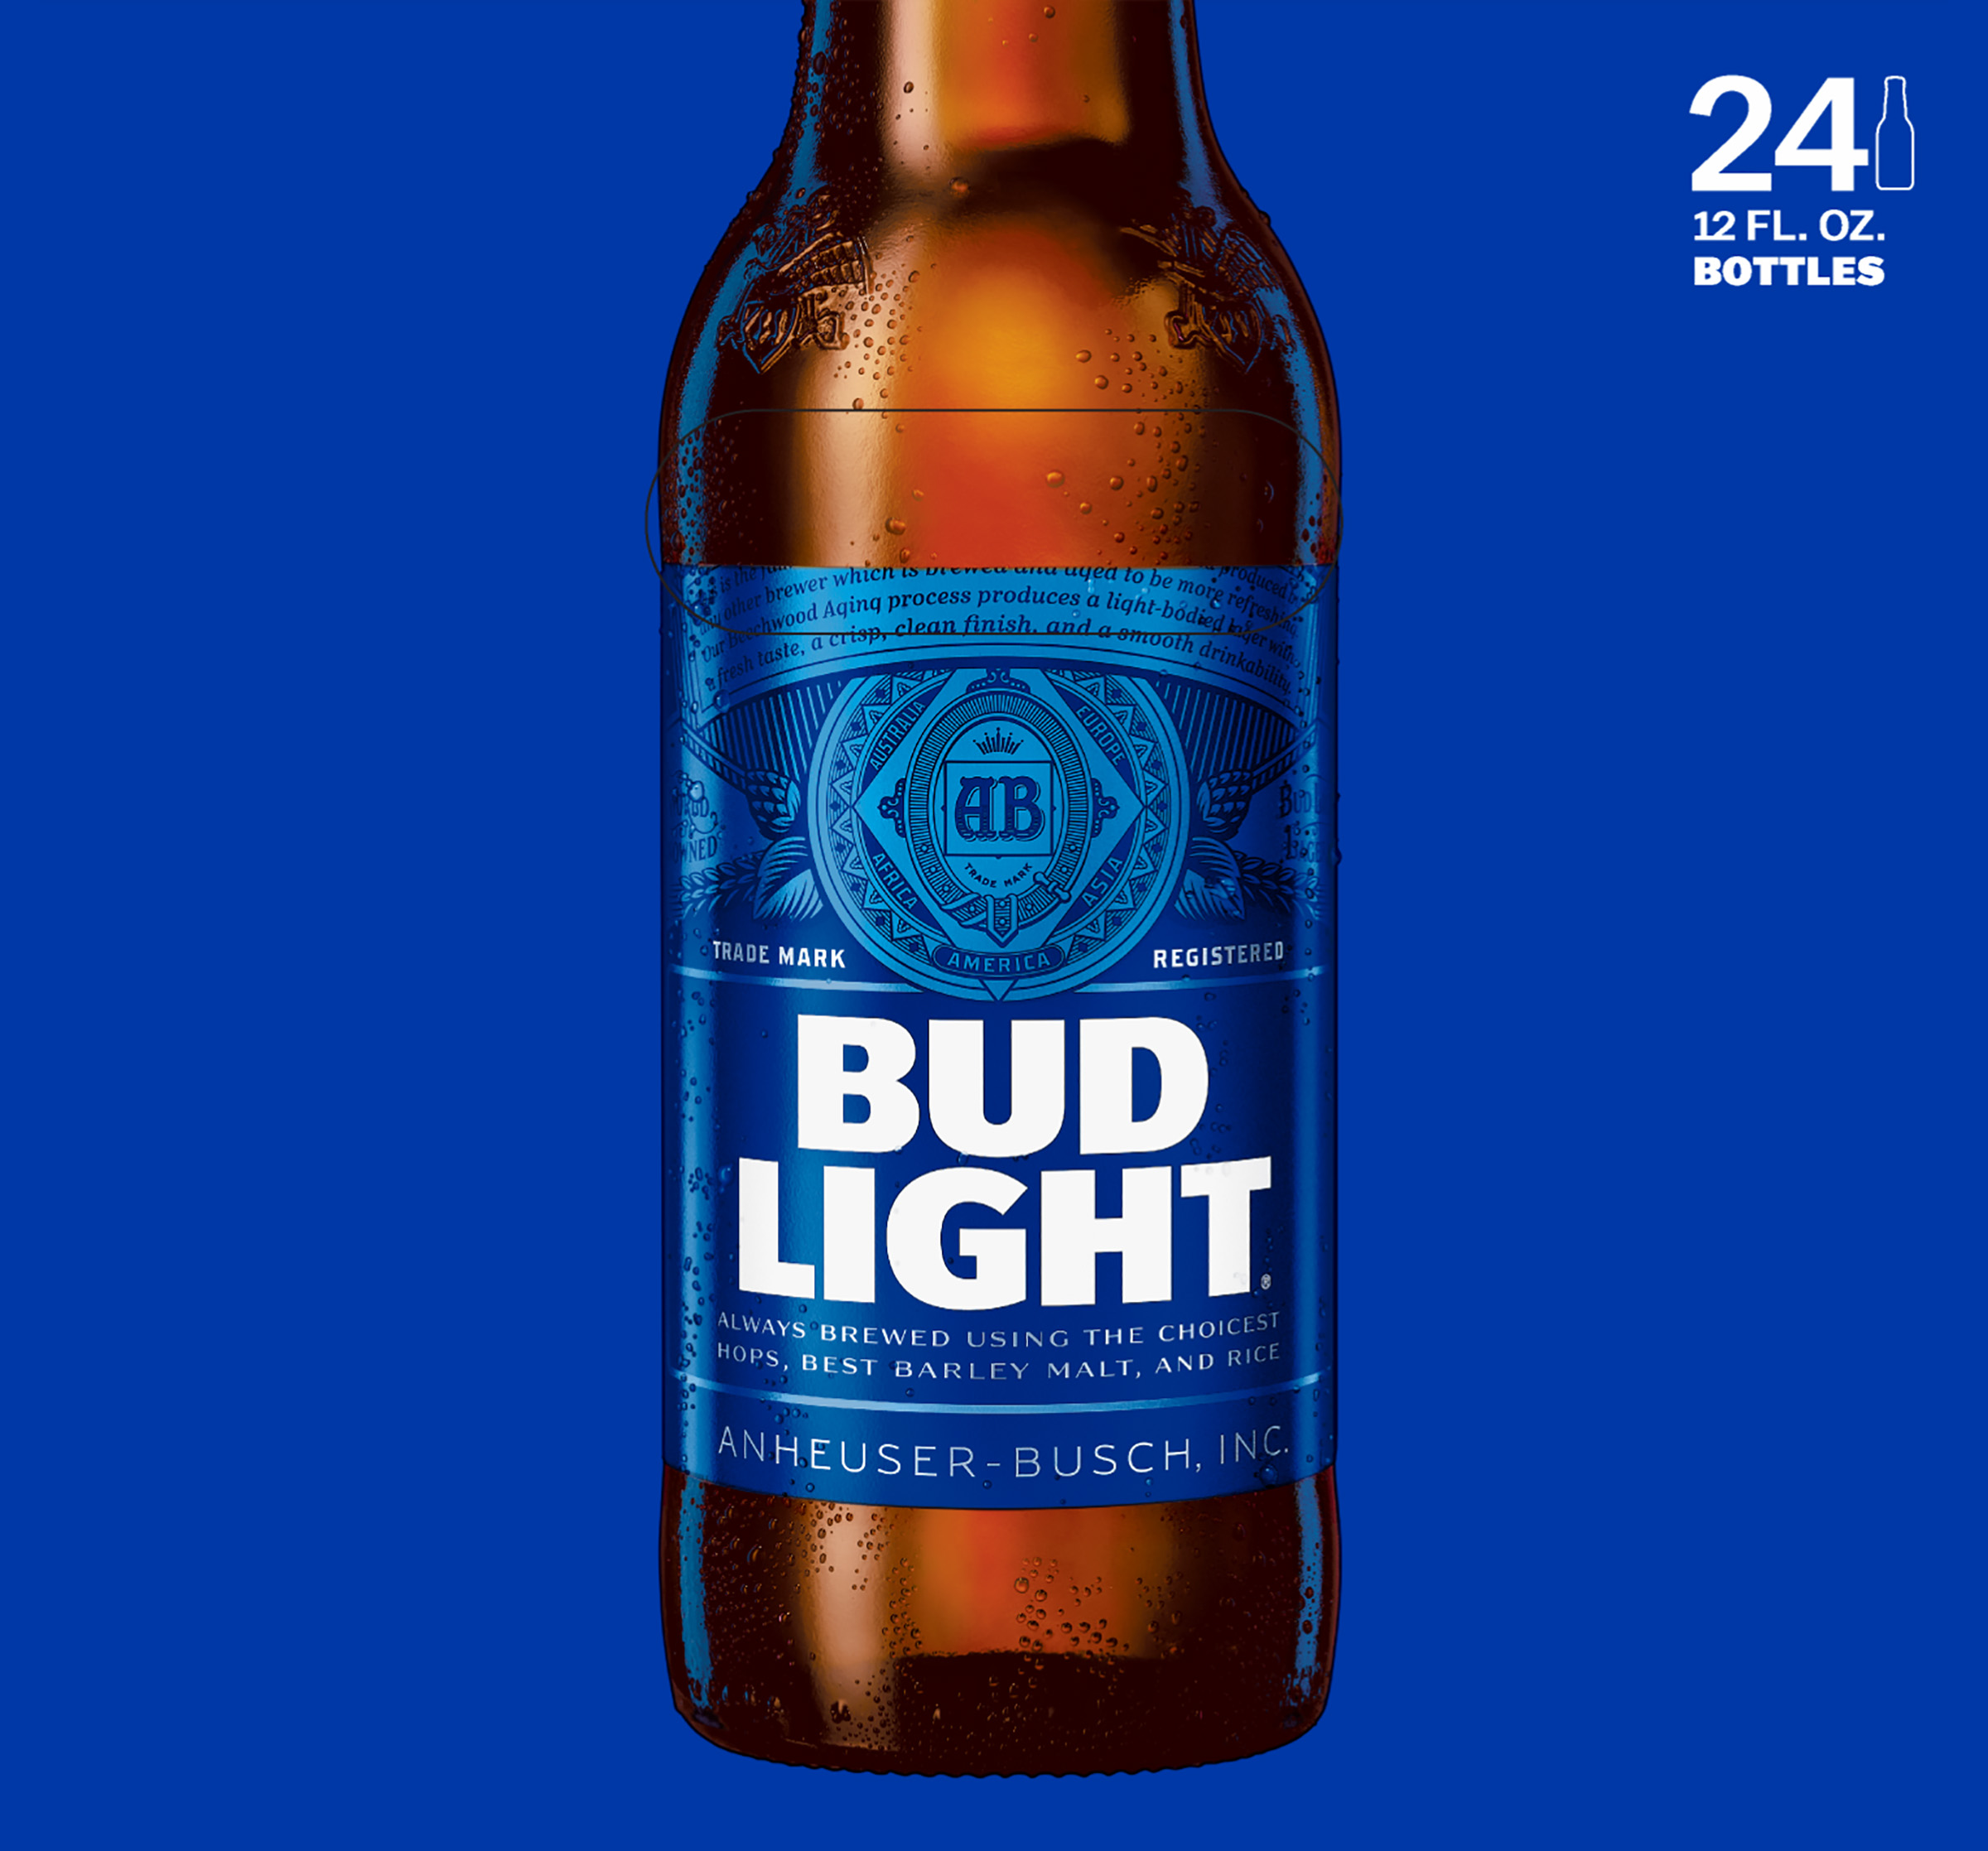 Marvelous Bud Light Beer 24 12 Fl. Oz. Bottles   Walmart.com Good Ideas